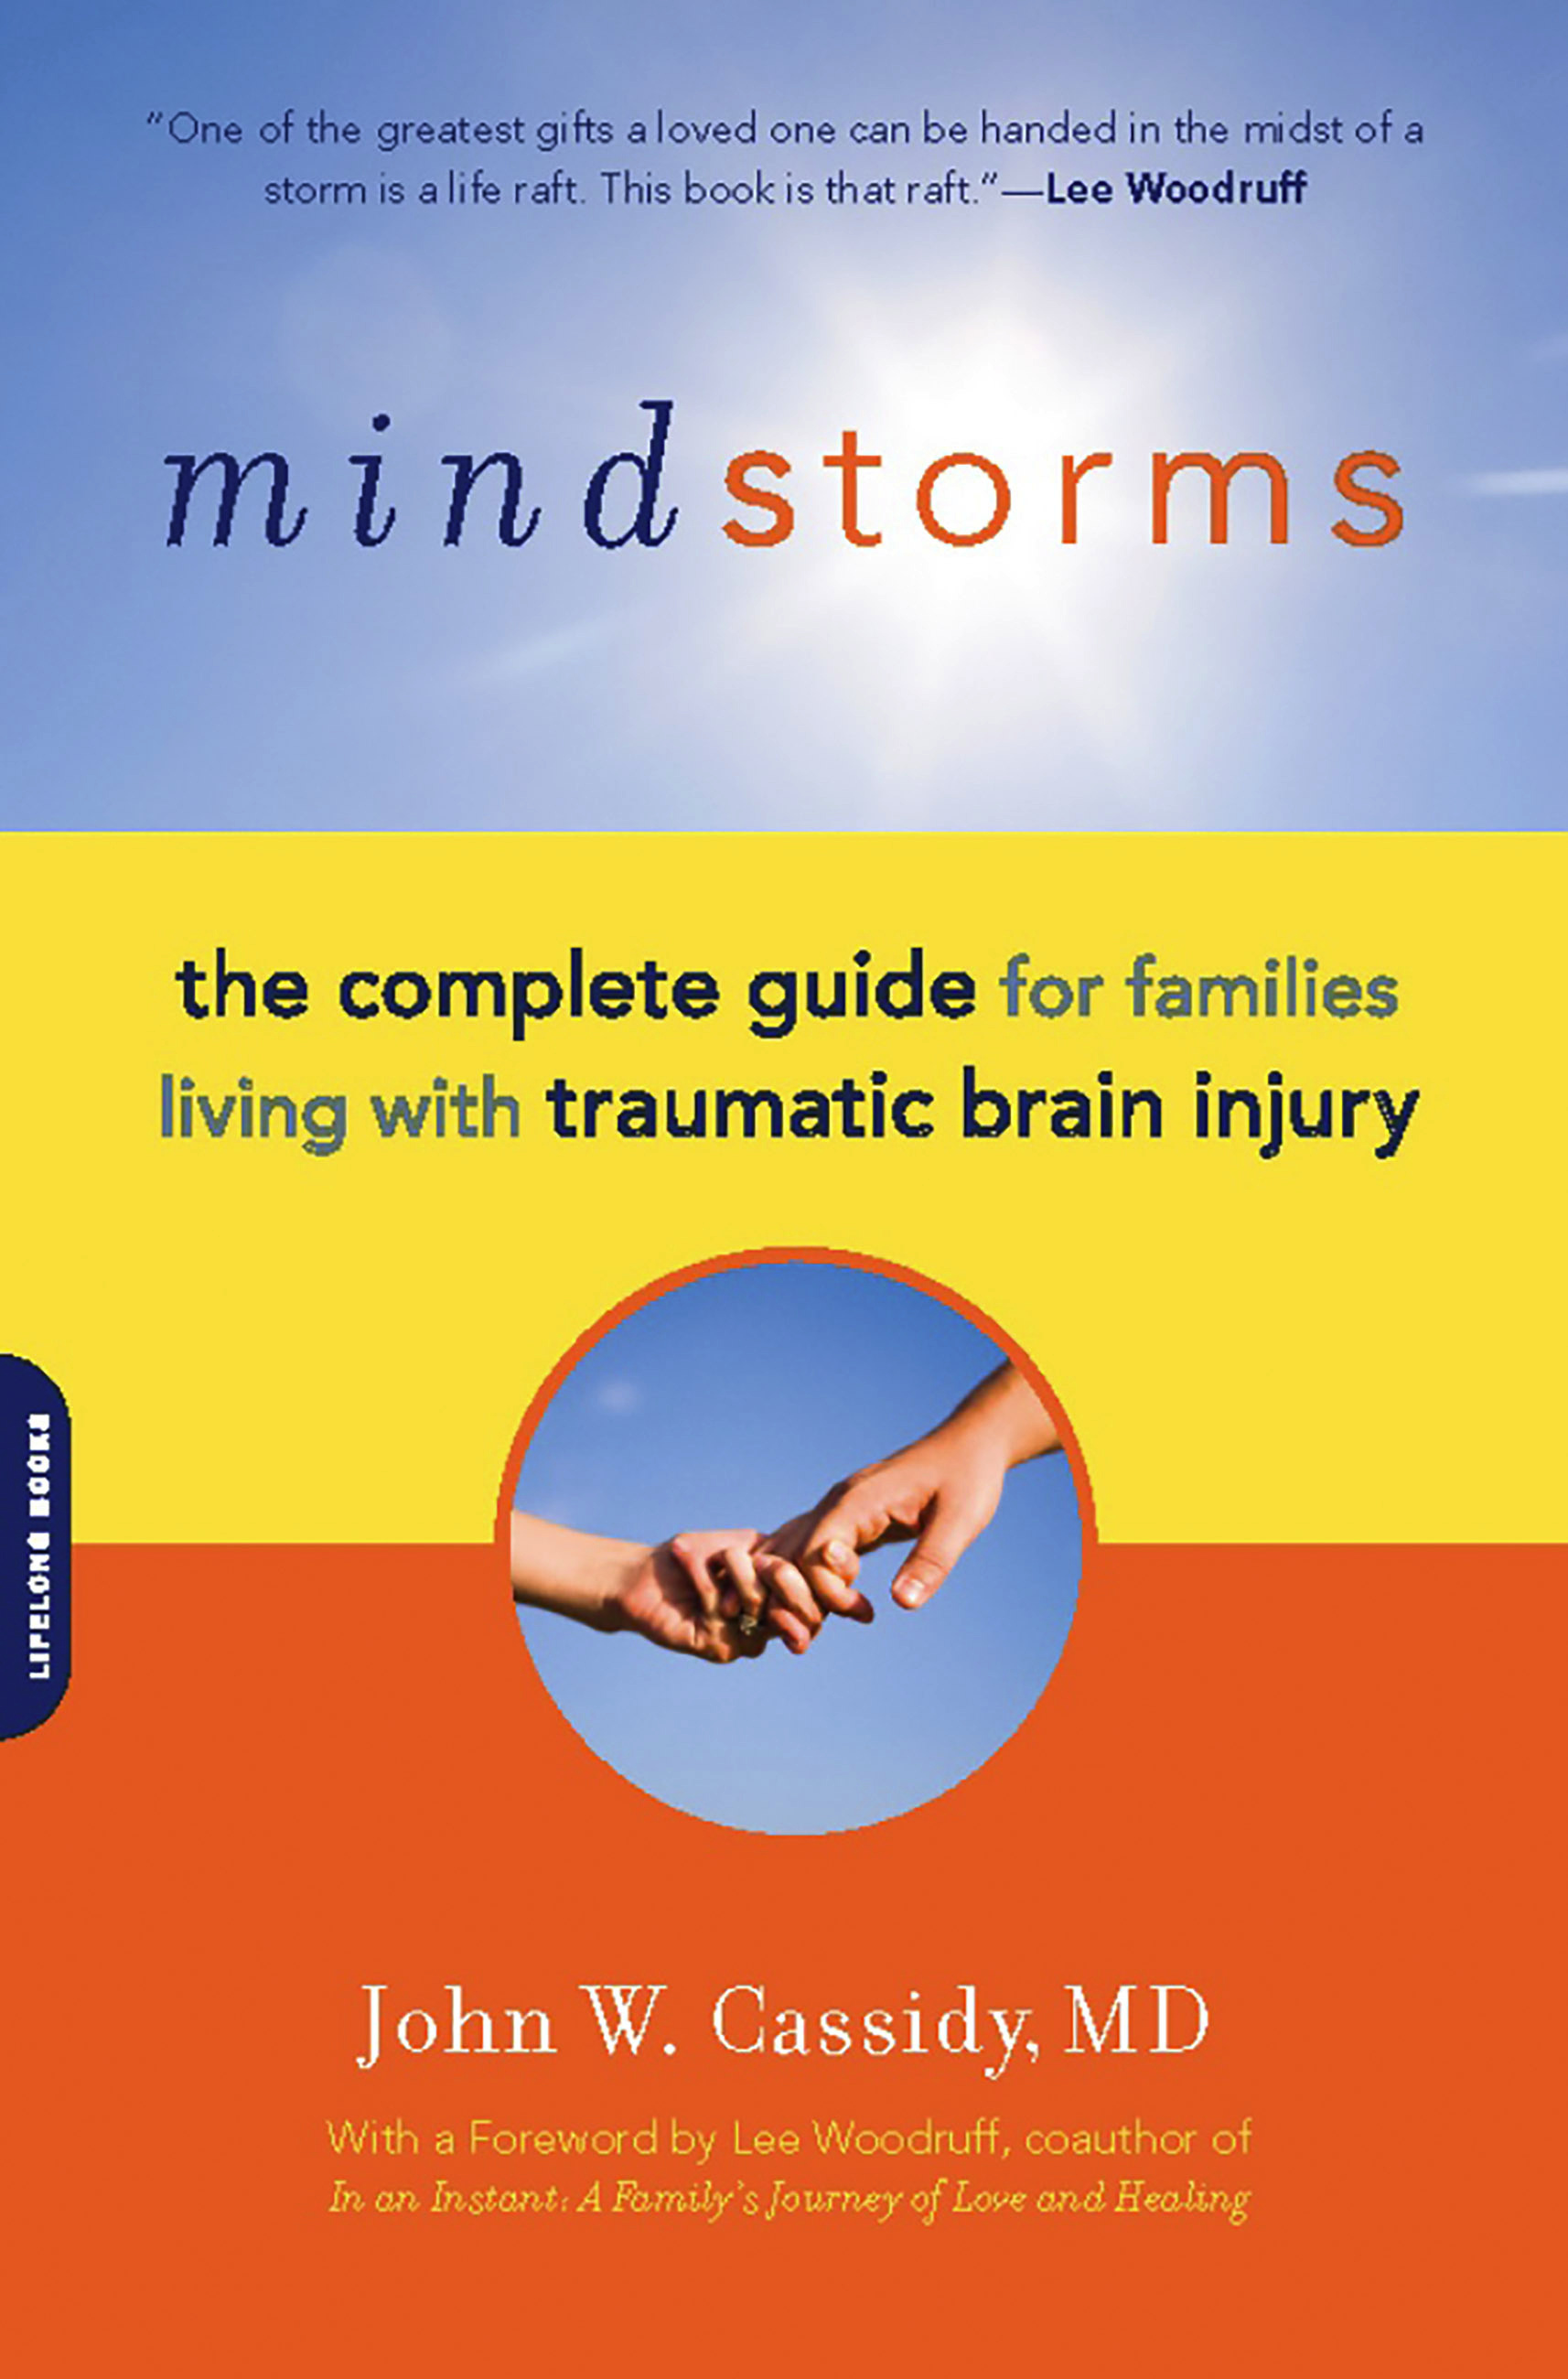 living with traumatic brain injury and